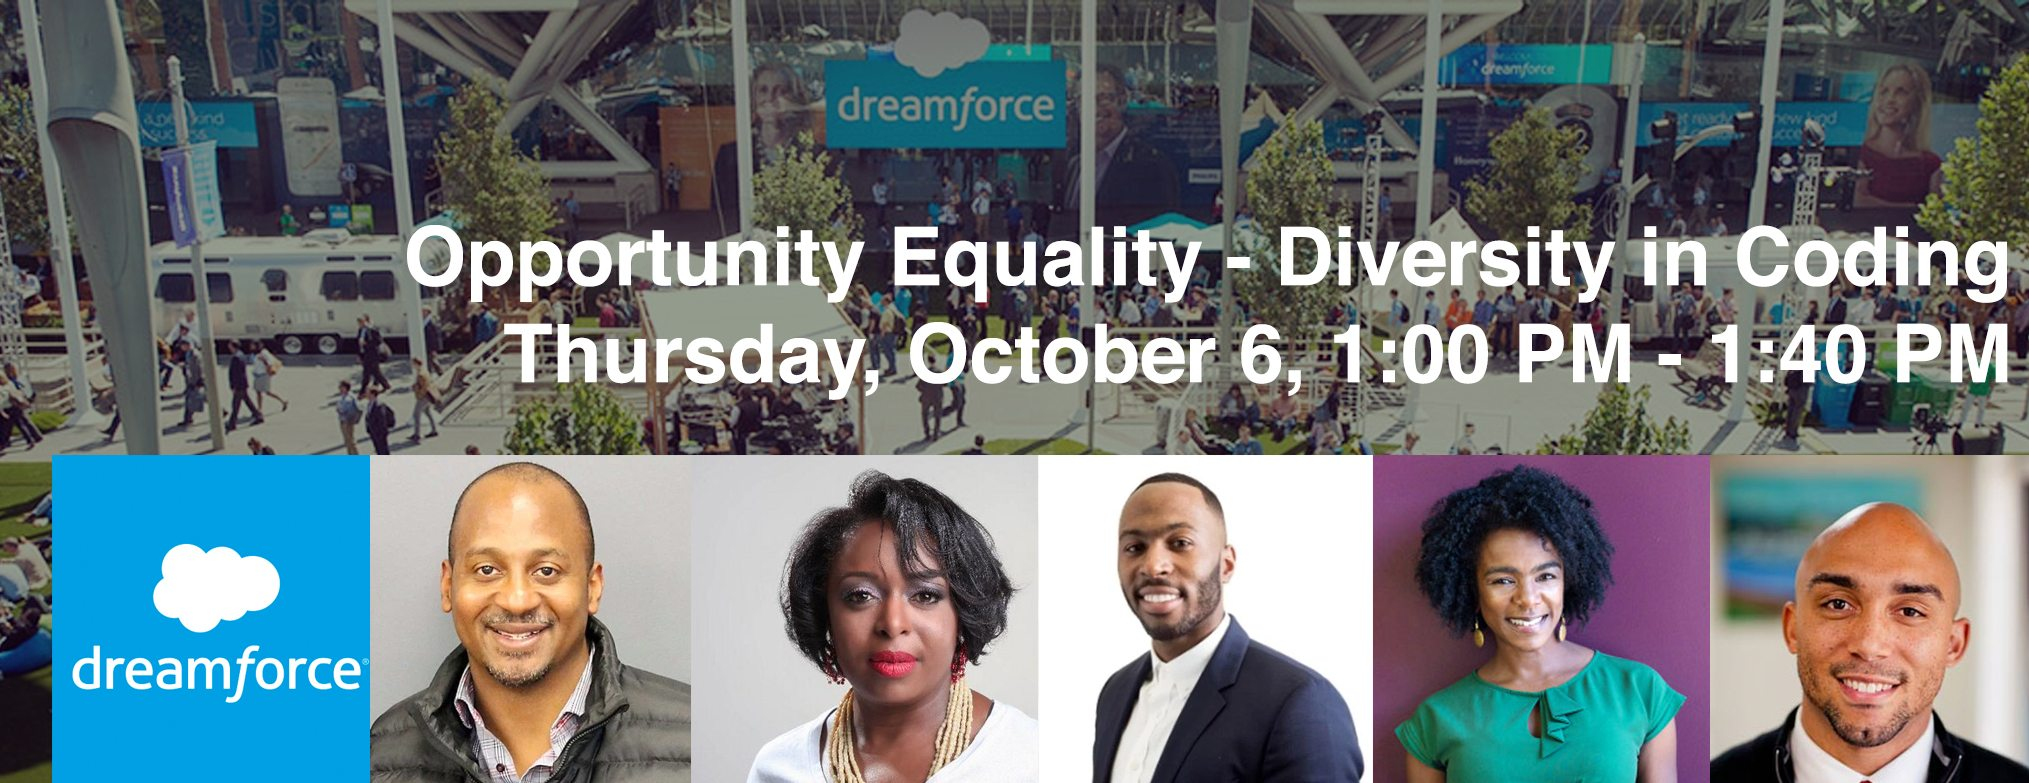 Dreamforce The Opportunity Equality—Diversity in Coding Panel Thursday, October 6, 01:00 PM—Thursday, October 6, 01:40 PM